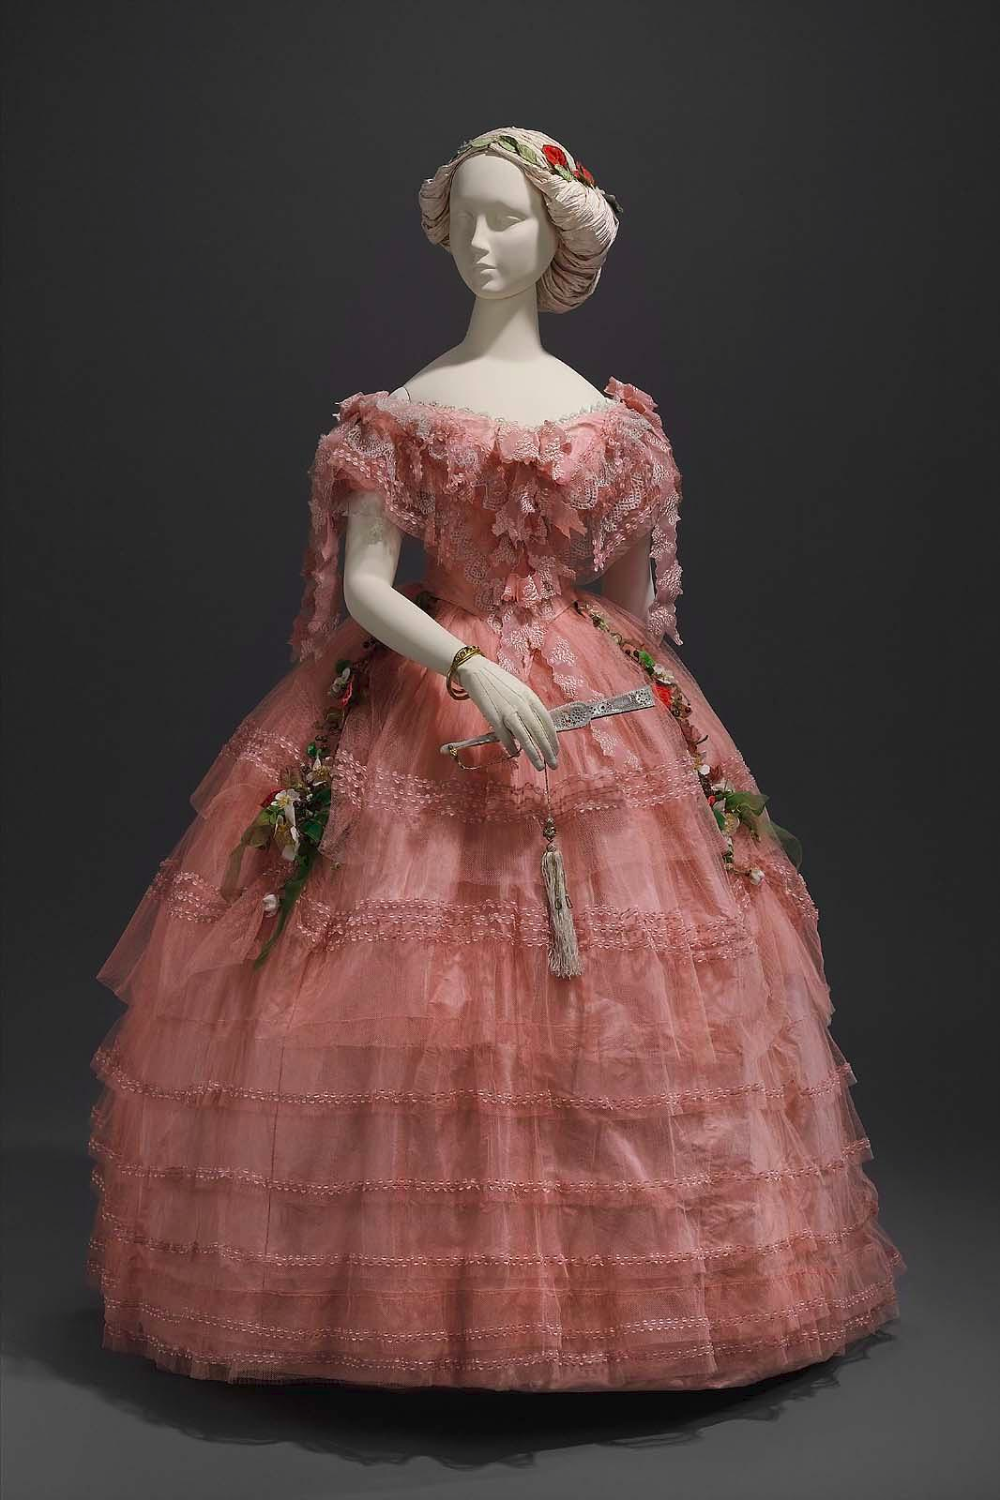 Wikivictorian On Twitter Ball Dresses Historical Dresses Vintage Gowns [ 1500 x 1000 Pixel ]